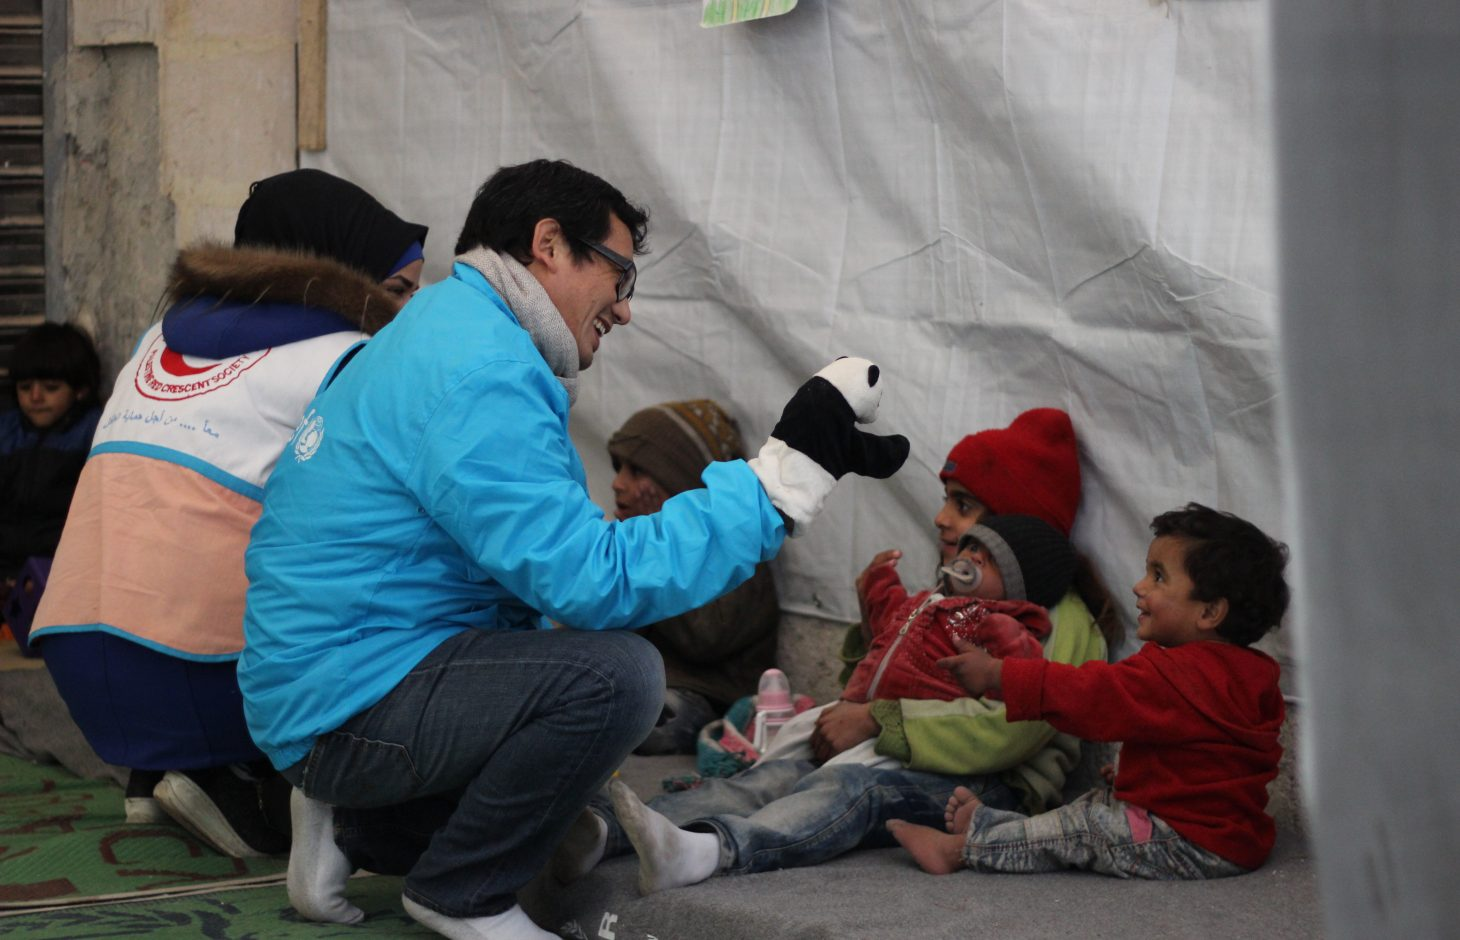 On 29 December 2016, UNICEF-supported volunteers entertain children at a child-friendly space in Jibreen. The makeshift center engages children aged 6-18 in recreational and educational activities as a form of psychosocial support. Volunteers also identify children in need of special care and refer them to local service providers.  Some 31,5000 people are reported to have been displaced from and within eastern Aleppo City since 24 November. Temperatures are dropping quickly and heavy rainfall has made conditions even worse over the past few days. UNICEF is providing blankets and winter clothing, as well as access to safe water, essential medical care, including vaccinations and psychosocial support for children who have lived through such horrors.  In Jibreen, to the east of Aleppo City, children and their families displaced by recent fighting in eastern Aleppo take shelter in a large warehouse in an area under Government control. Some 8,000 people are sheltering there.  In Hanano, in east Aleppo City was the first district to be retaken by Government forces on 27 November. People are now moving back to the area as the frontline of fighting has moved further away. This includes families returning to their homes, as well as displaced families from other areas of east Aleppo.